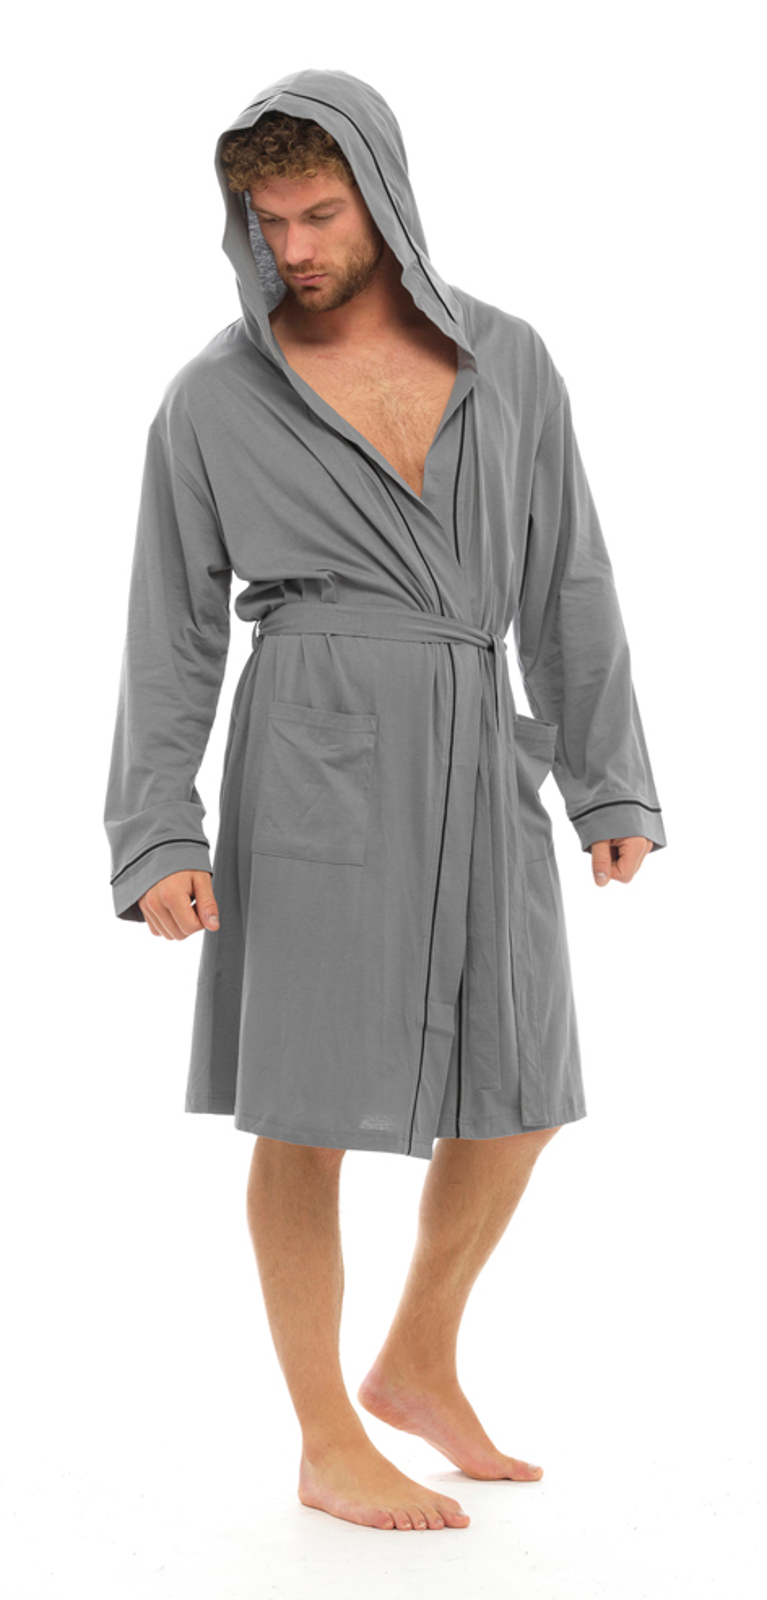 Our silk robes are also perfect for after a bath – the luxurious feel of silk on the skin after a cleansing and relaxing bath makes you feel pampered and pleased. We have a number of styles and materials that are meant to fit your distinctive style.